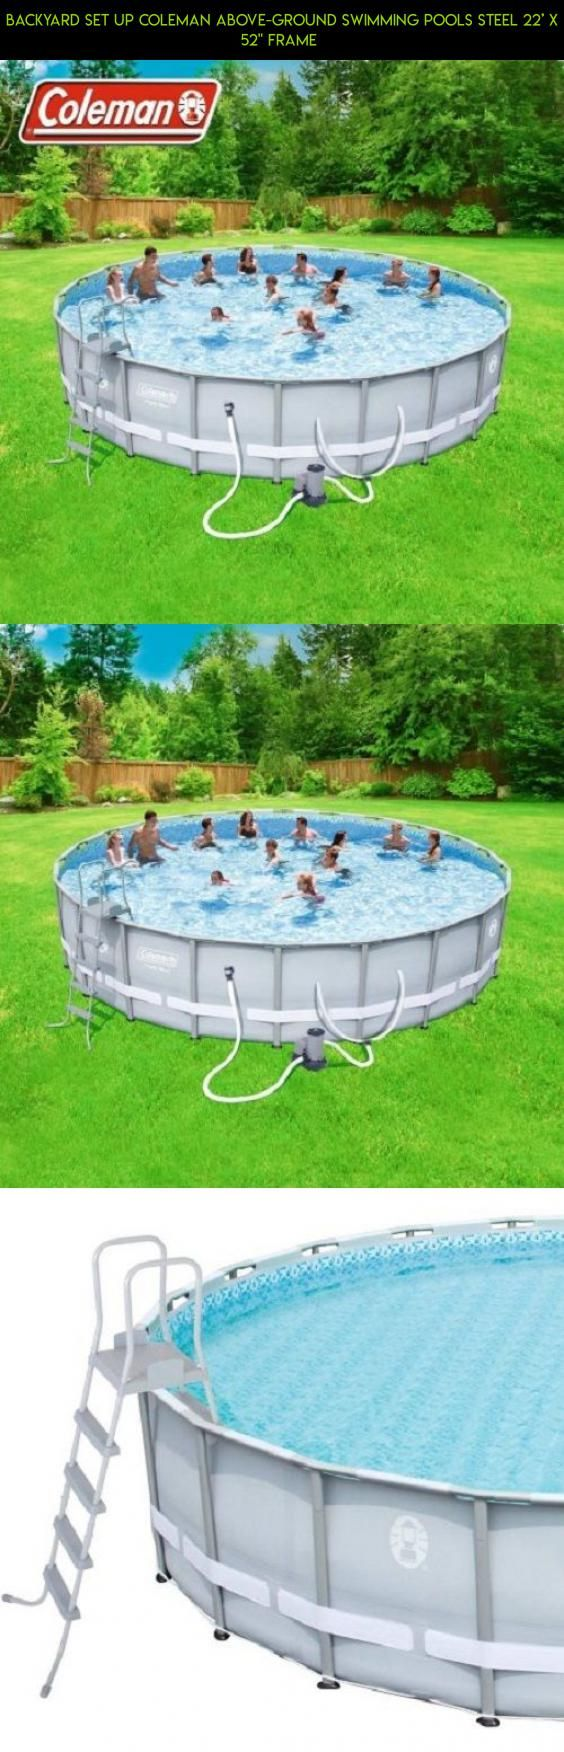 backyard set up coleman above ground swimming pools steel 22 u0027 x 52